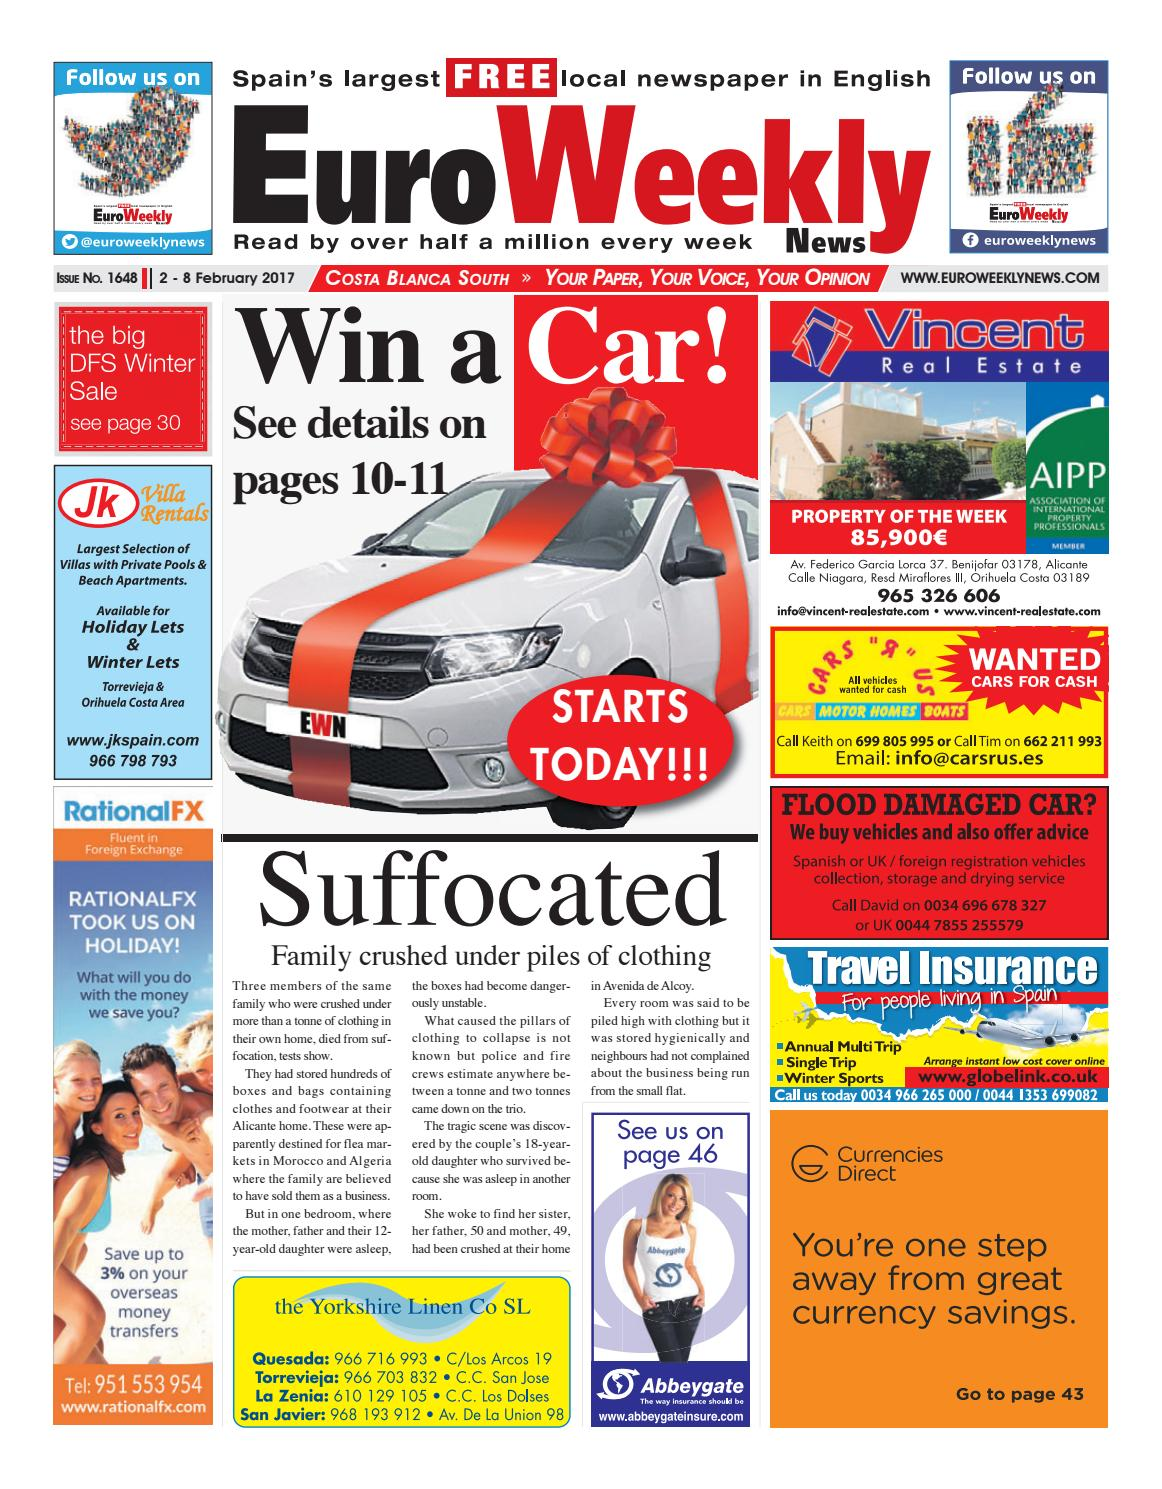 Euro weekly news costa blanca south 2 8 february 2017 issue 1648 euro weekly news costa blanca south 2 8 february 2017 issue 1648 by euro weekly news media sa issuu fandeluxe Choice Image